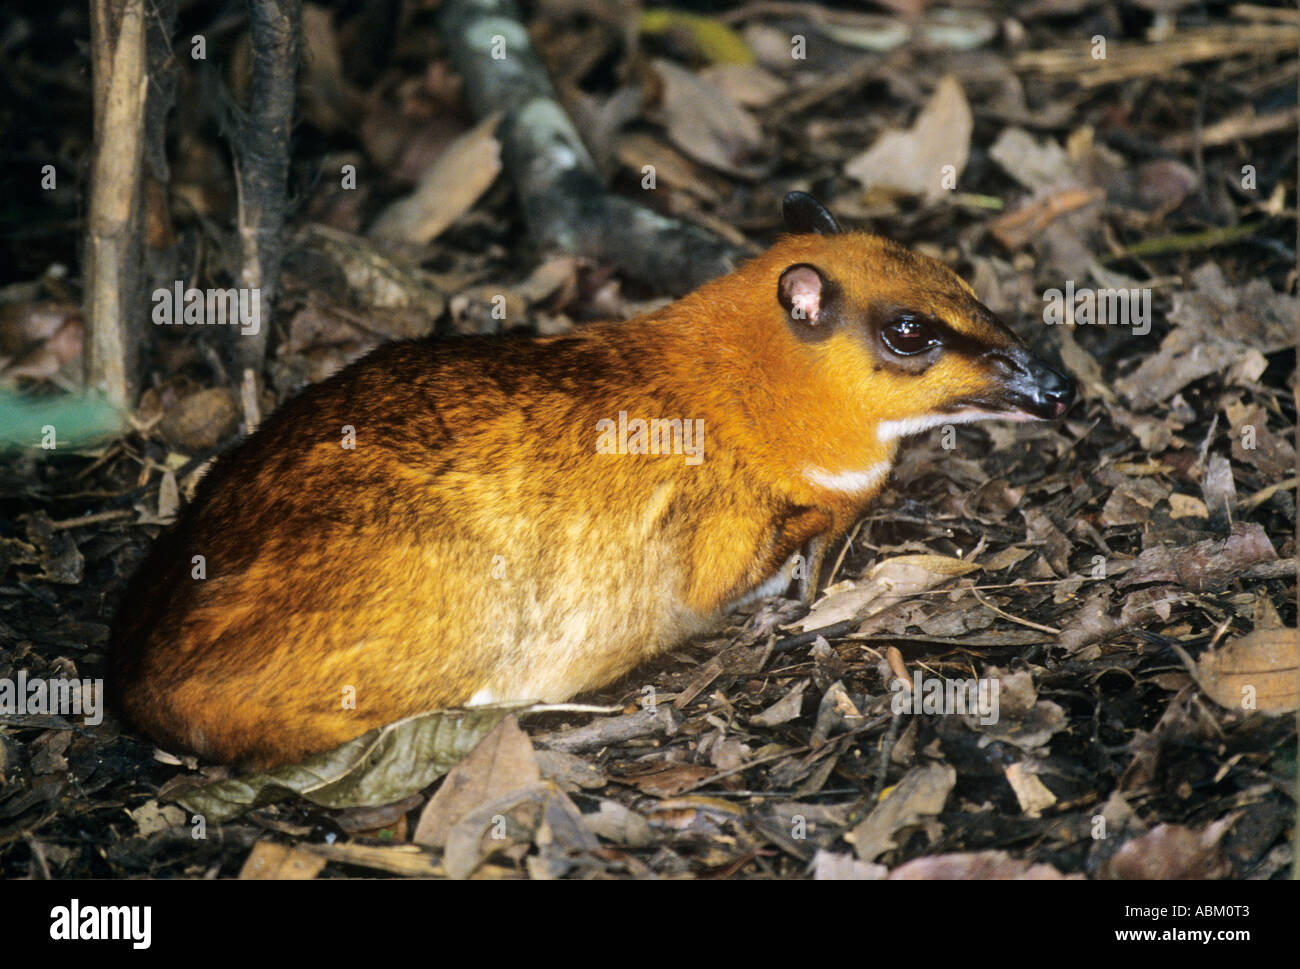 Greater mouse deer